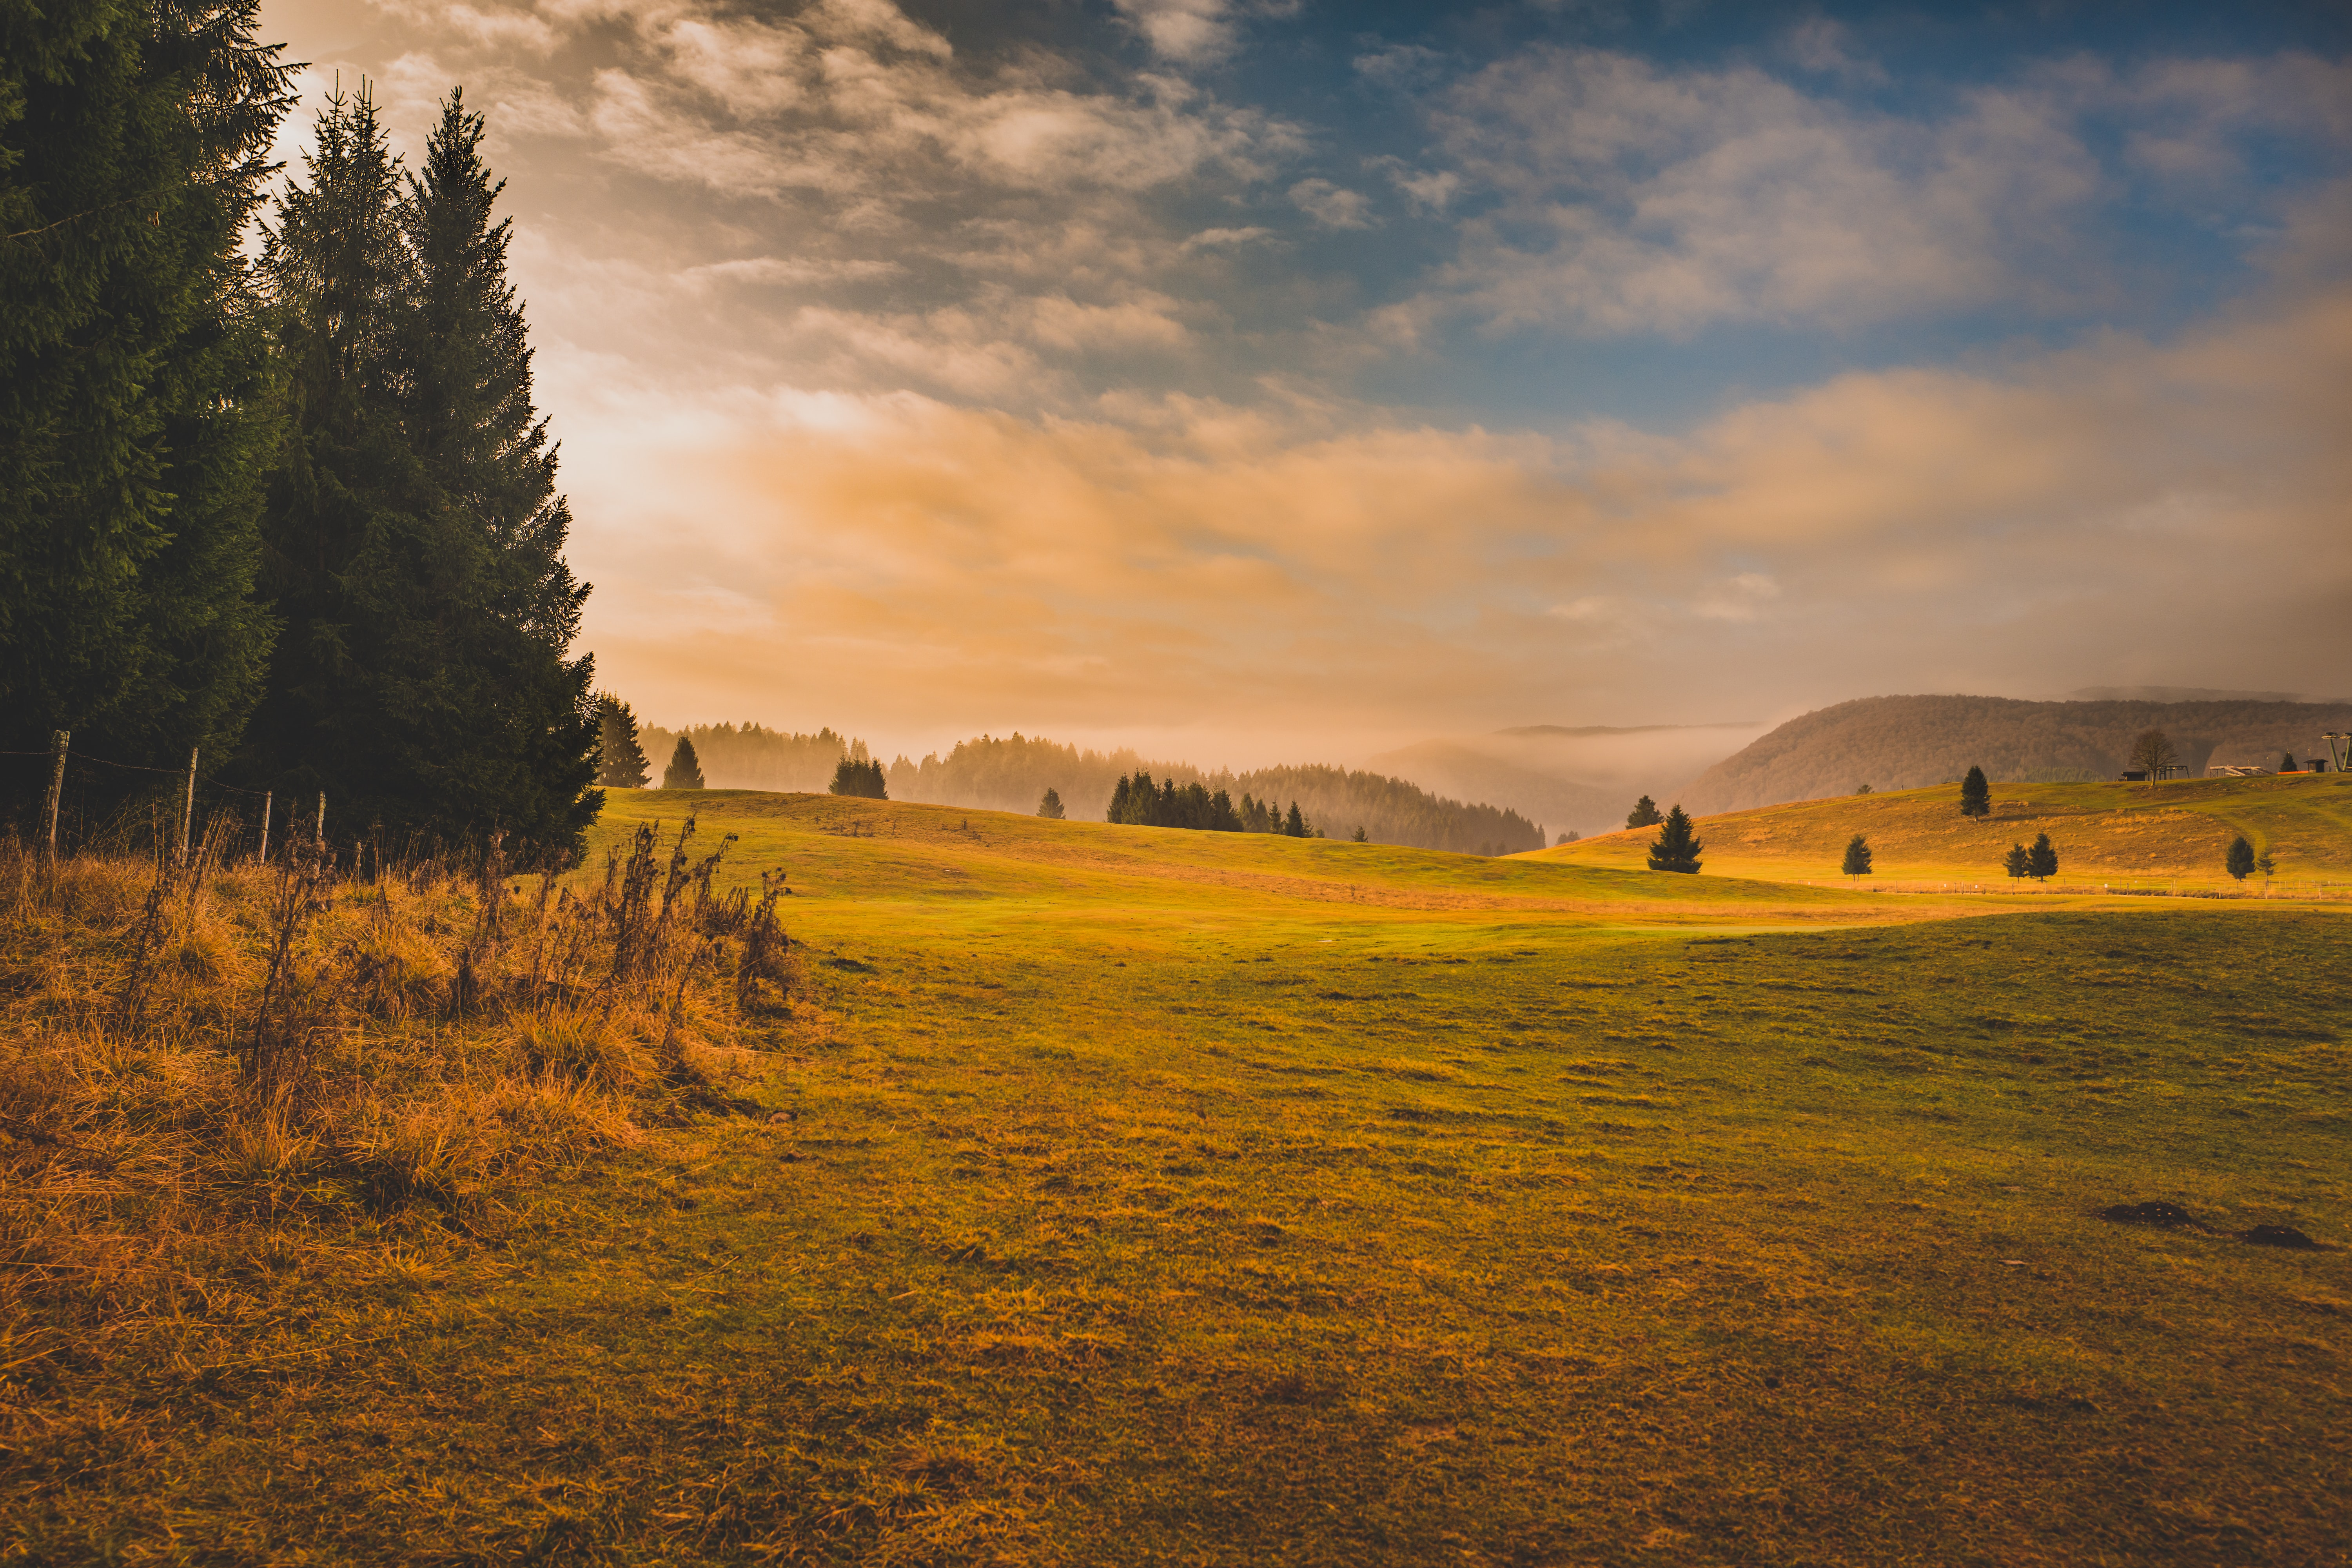 grass field and pine trees during golden hour